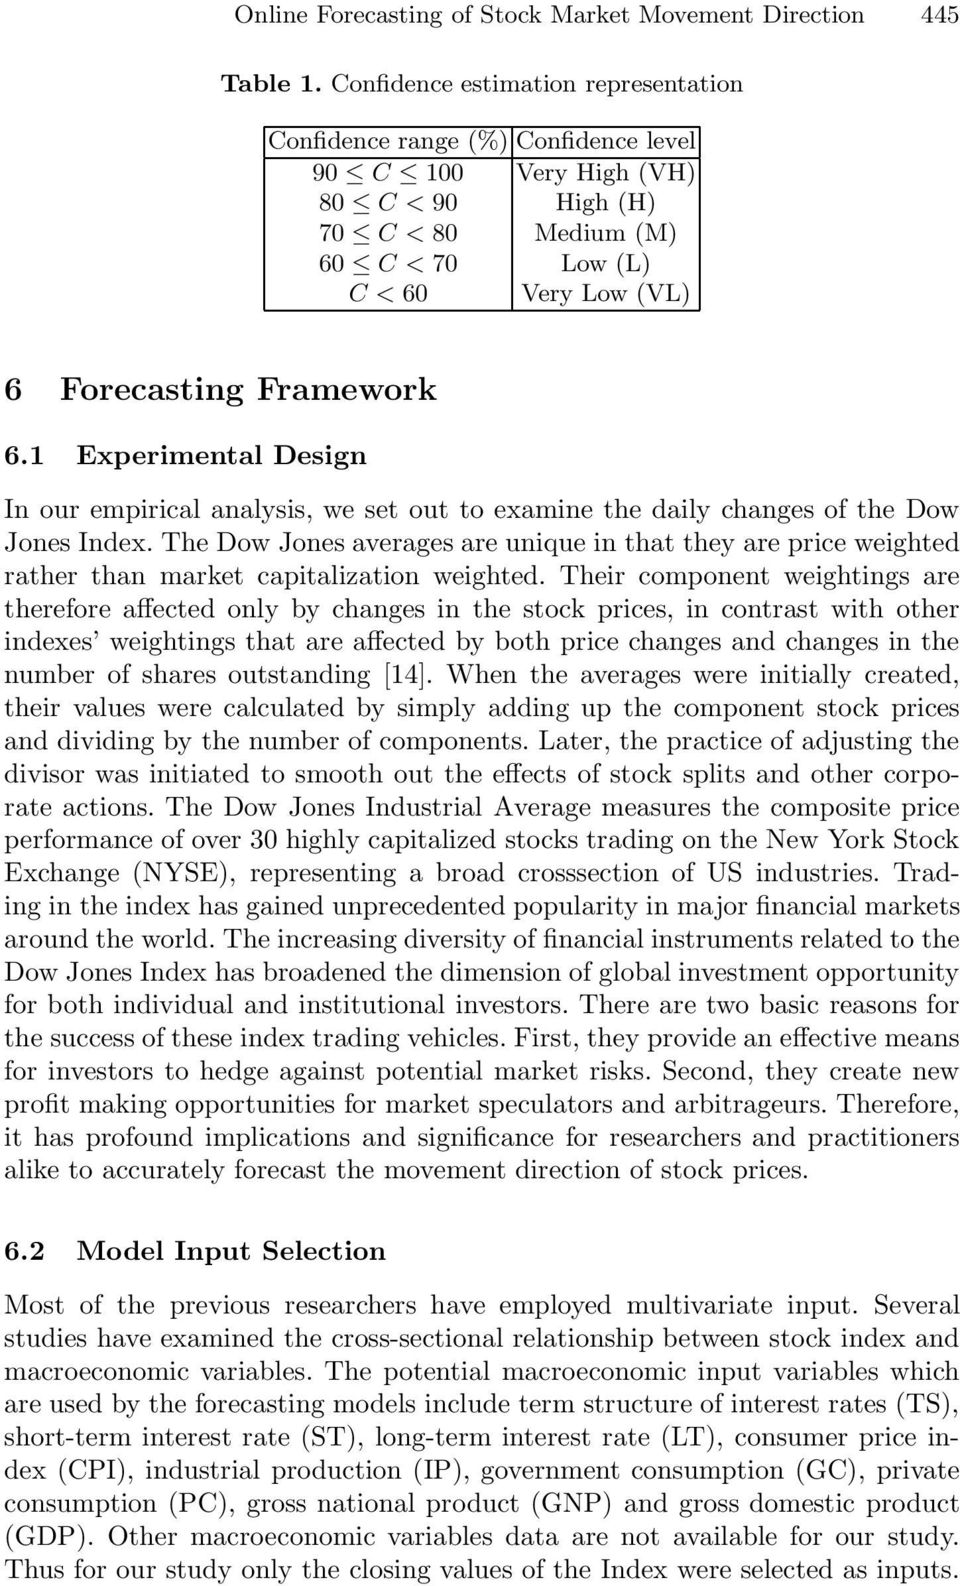 1 Experimental Design In our empirical analysis, we set out to examine the daily changes of the Dow Jones Index.